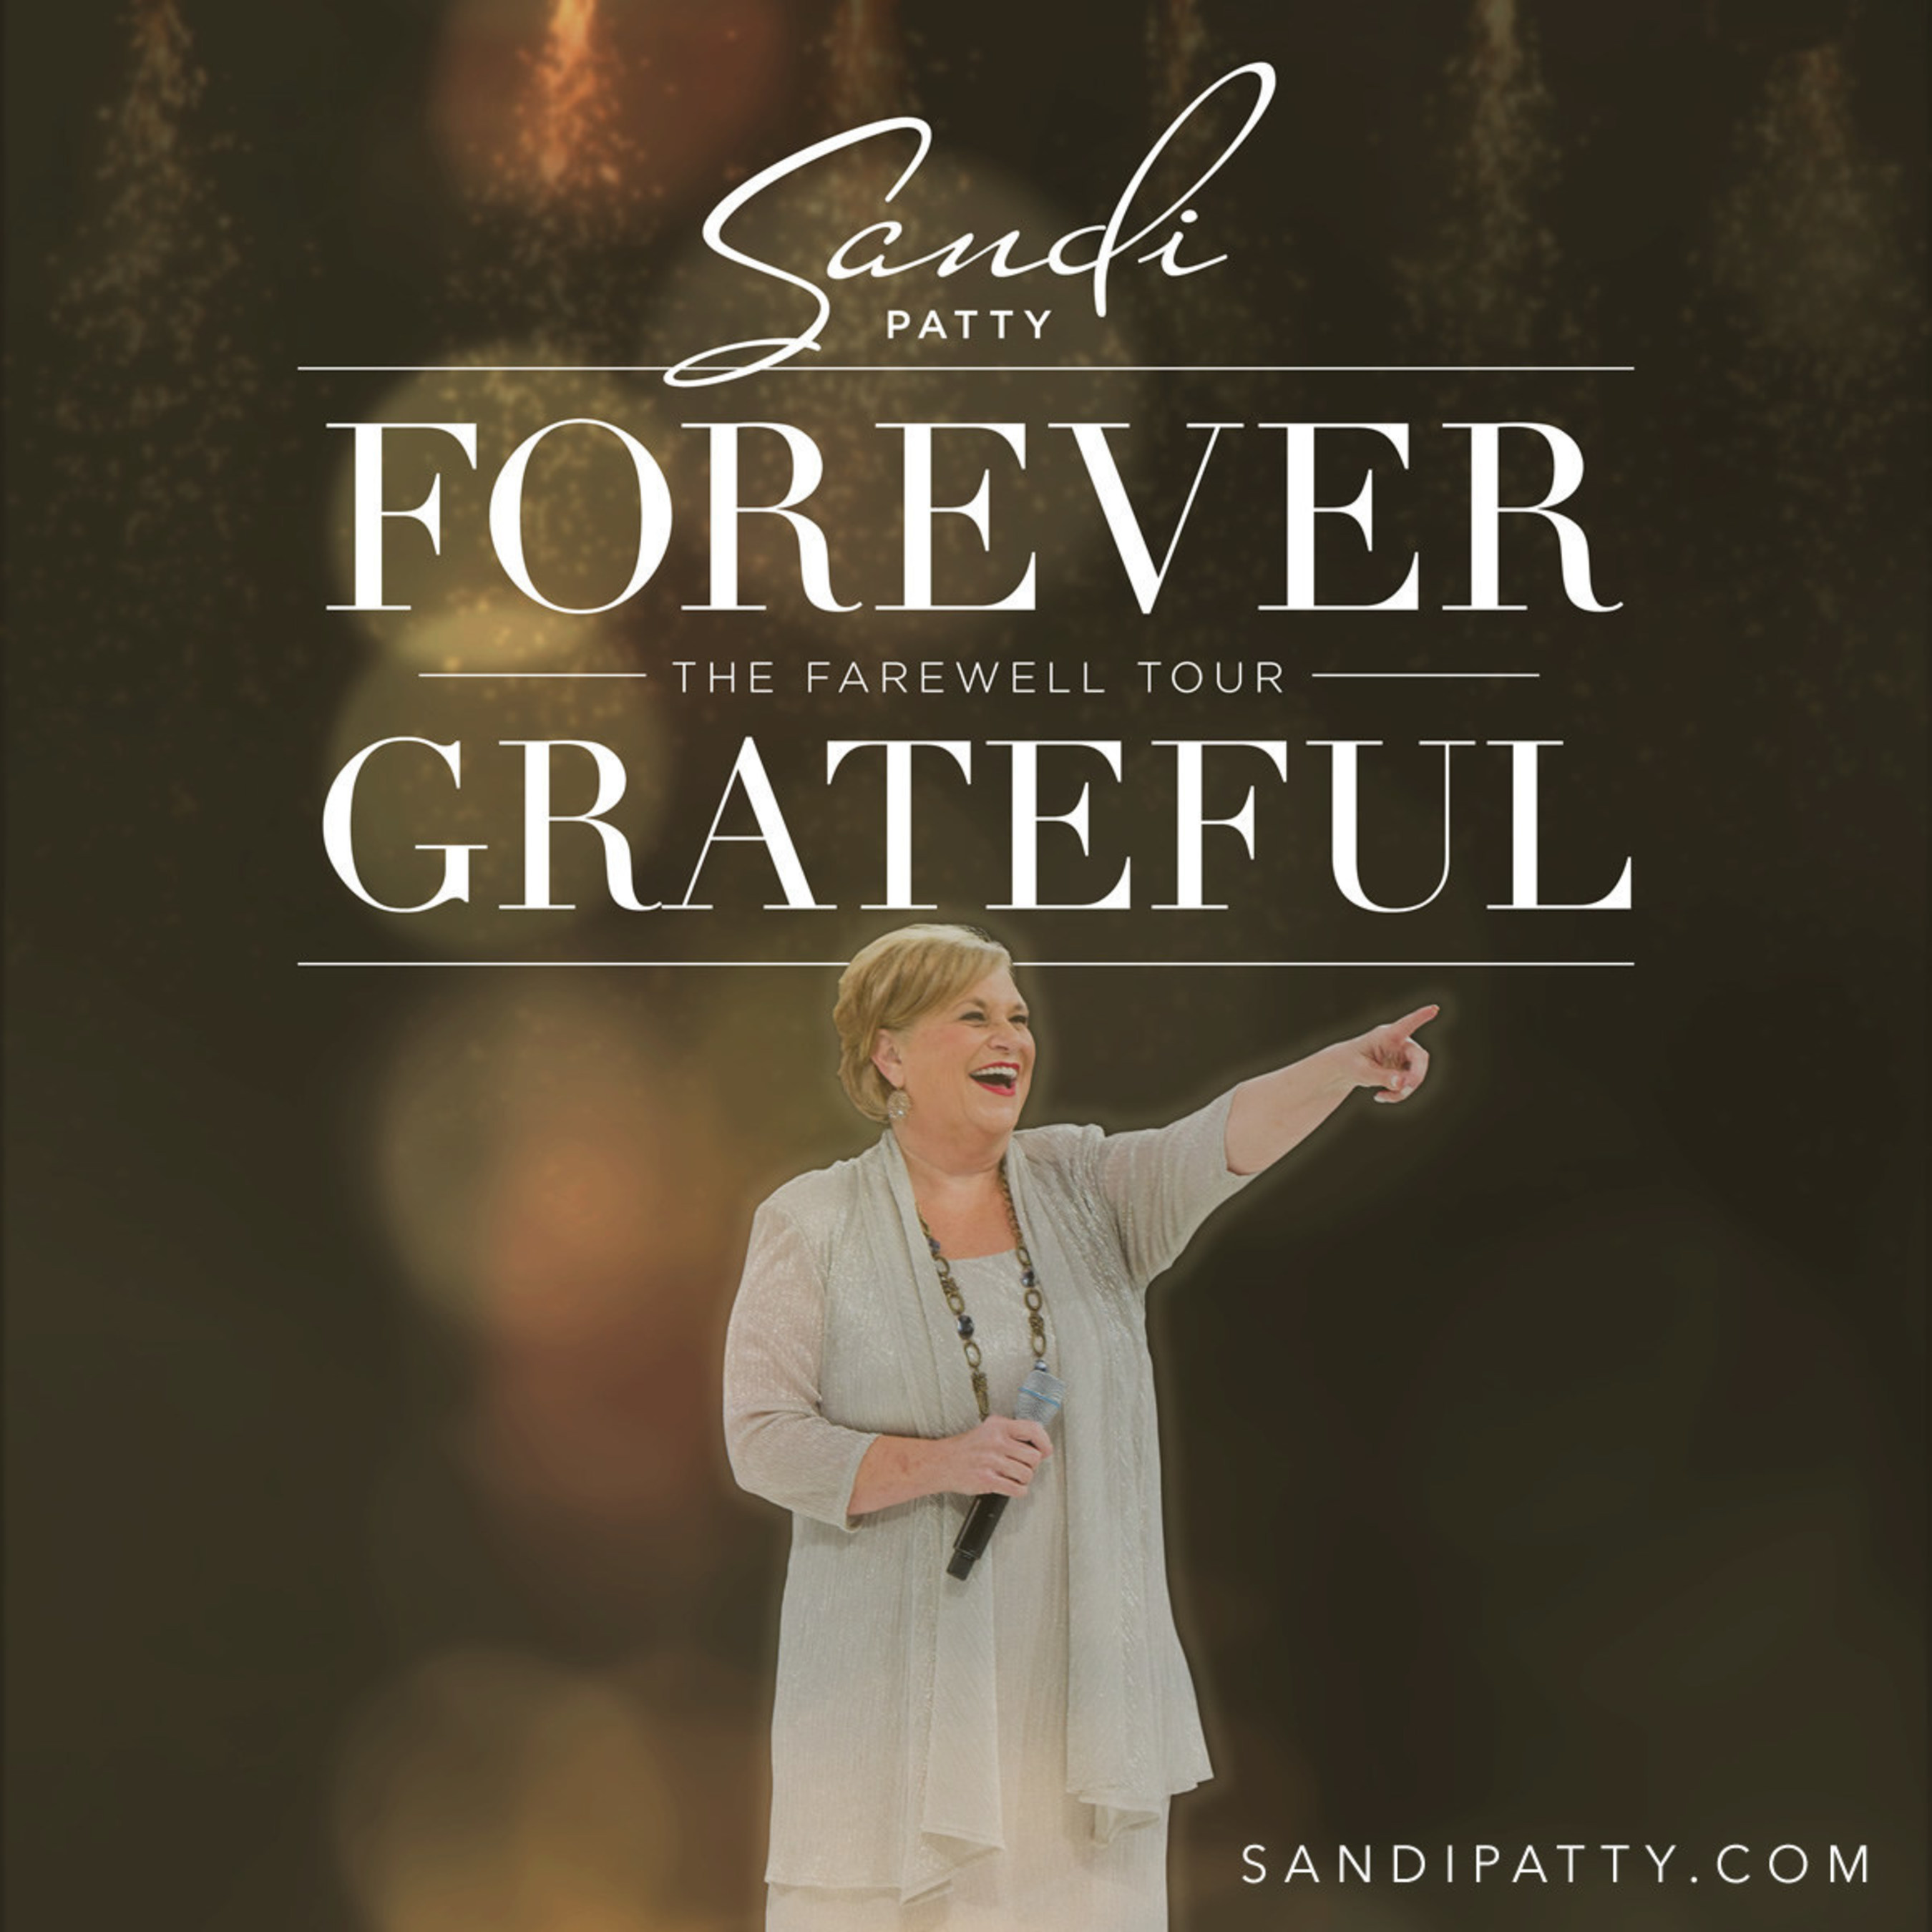 Five-Time Grammy' Award Winning Music Great Sandi Patty Announces 'Forever Grateful: The Farewell Tour' And New Album, Forever Grateful